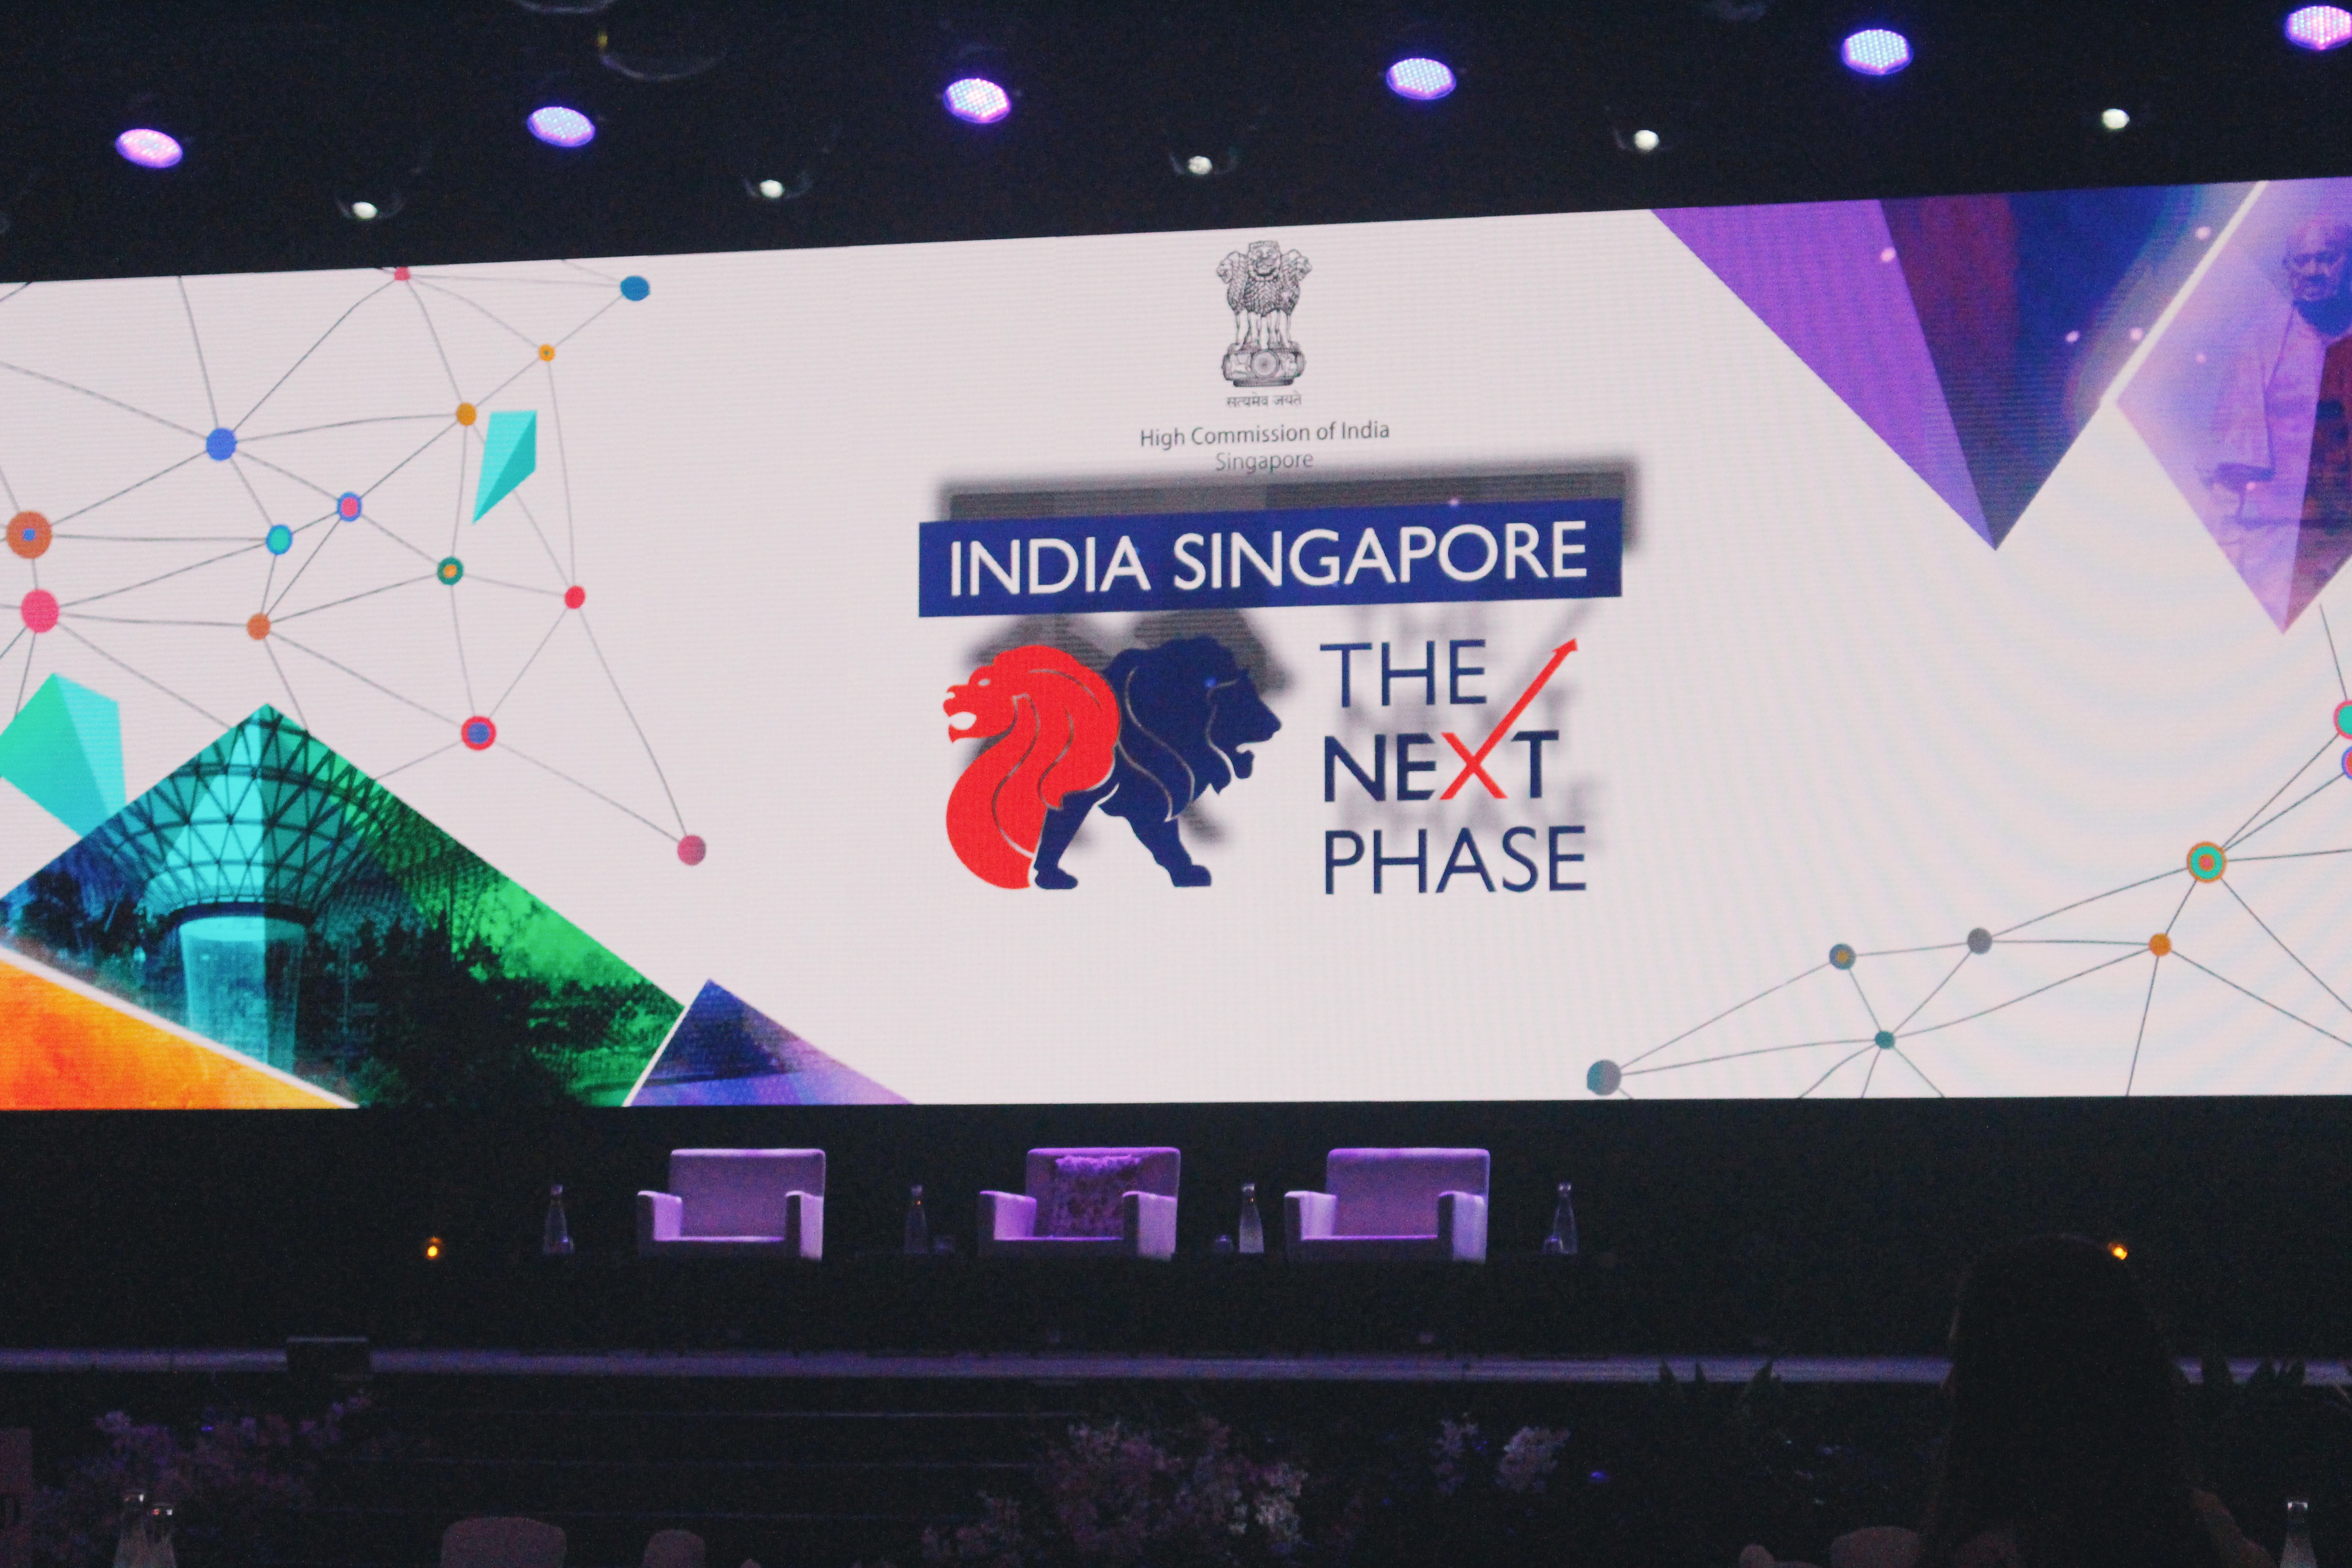 India-Singapore: The Next Phase business and innovation summit inaugurates on Monday, September 9, at Marina Bay Sands Expo and Convention Centre. Photo: Connected to India